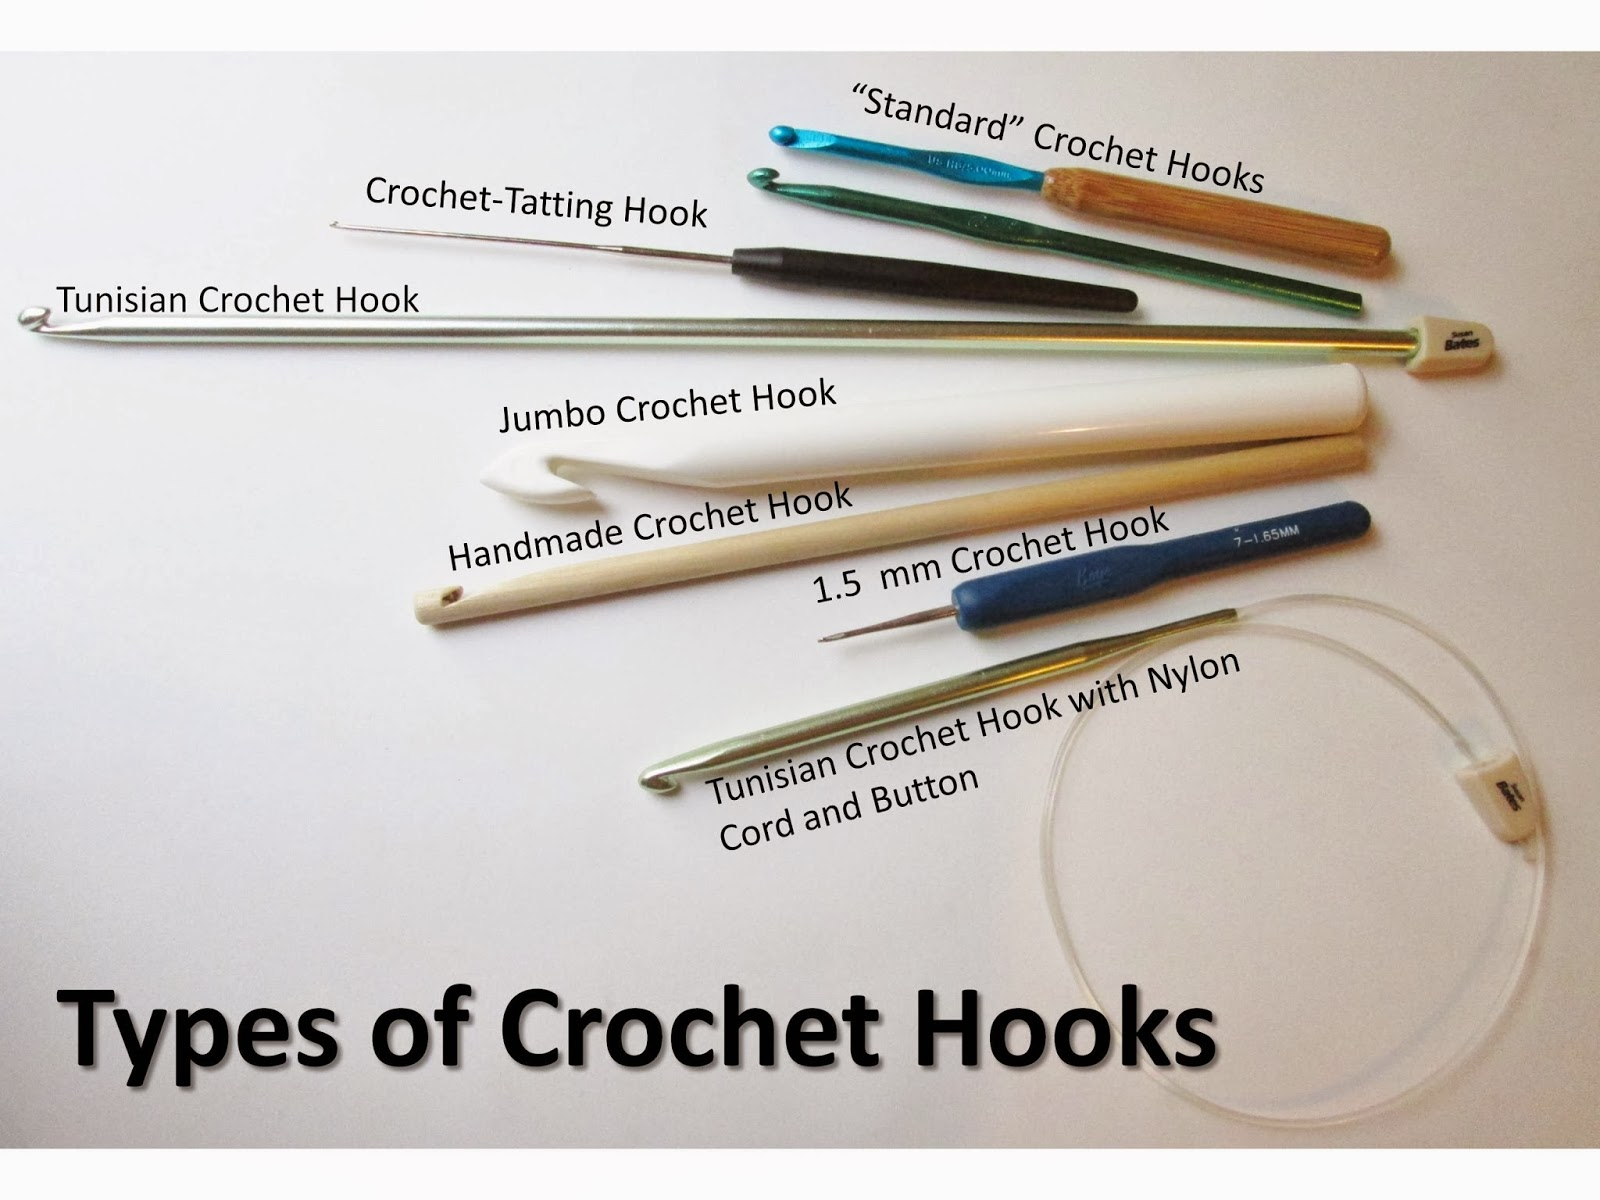 gypsy daughter essays a brief introduction to crochet hooks a brief introduction to crochet hooks